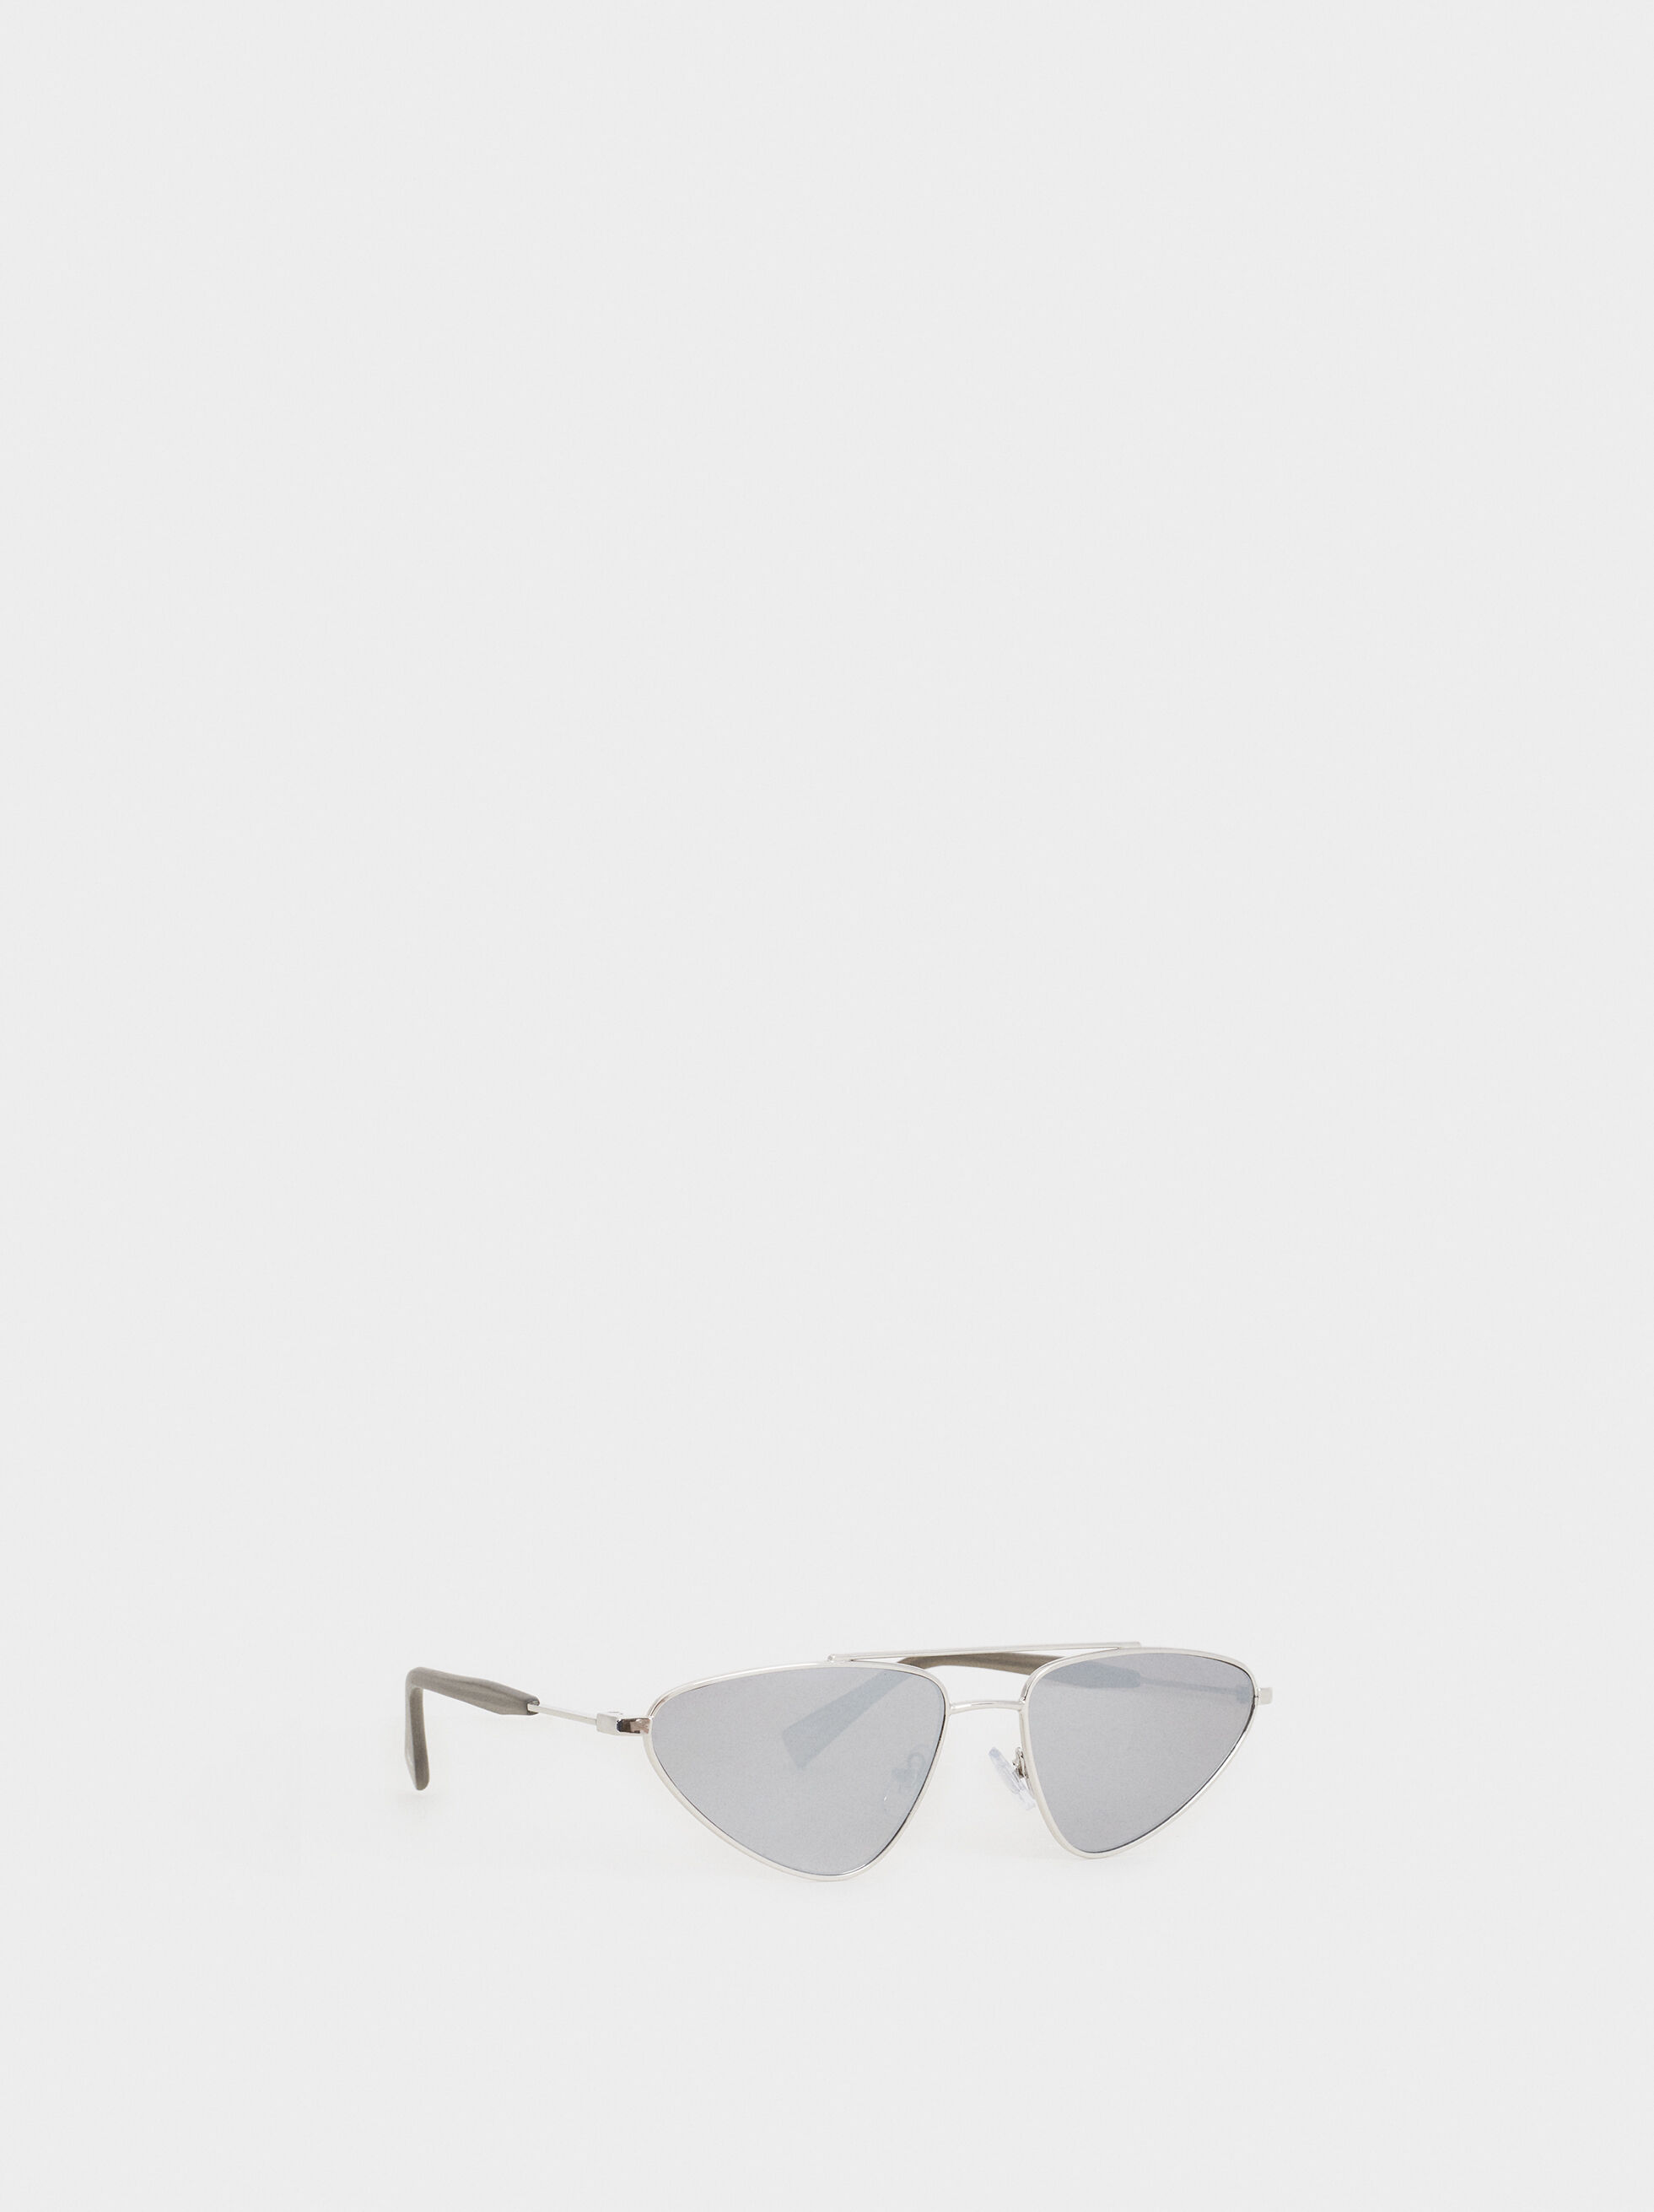 Gafas Here And Now, Plateado, hi-res